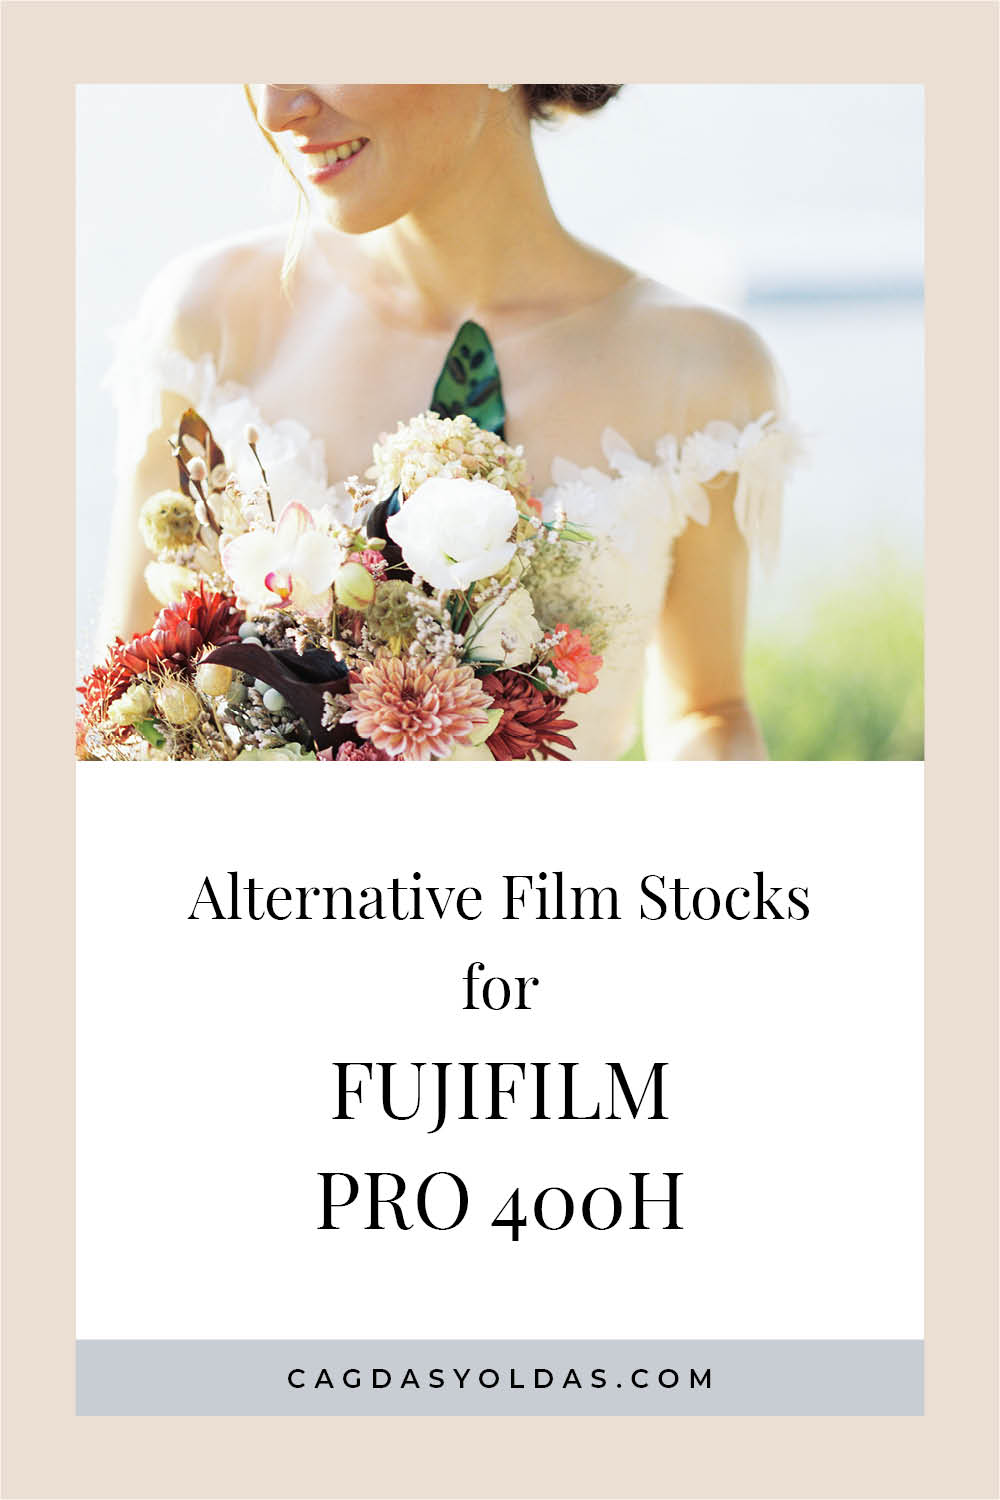 Alternative Film Stocks for Fujifilm PRO 400H